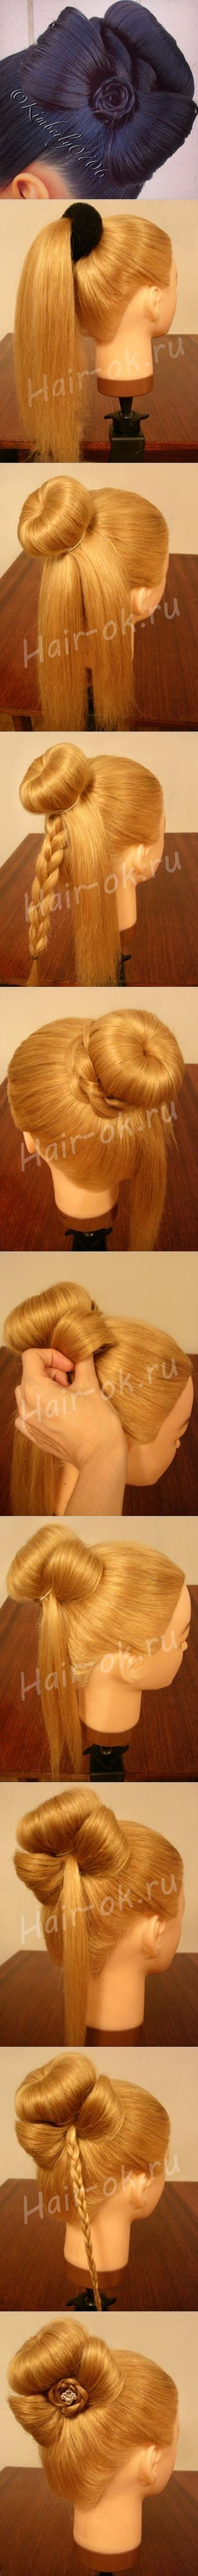 DIY Braided Bow Hairstyle